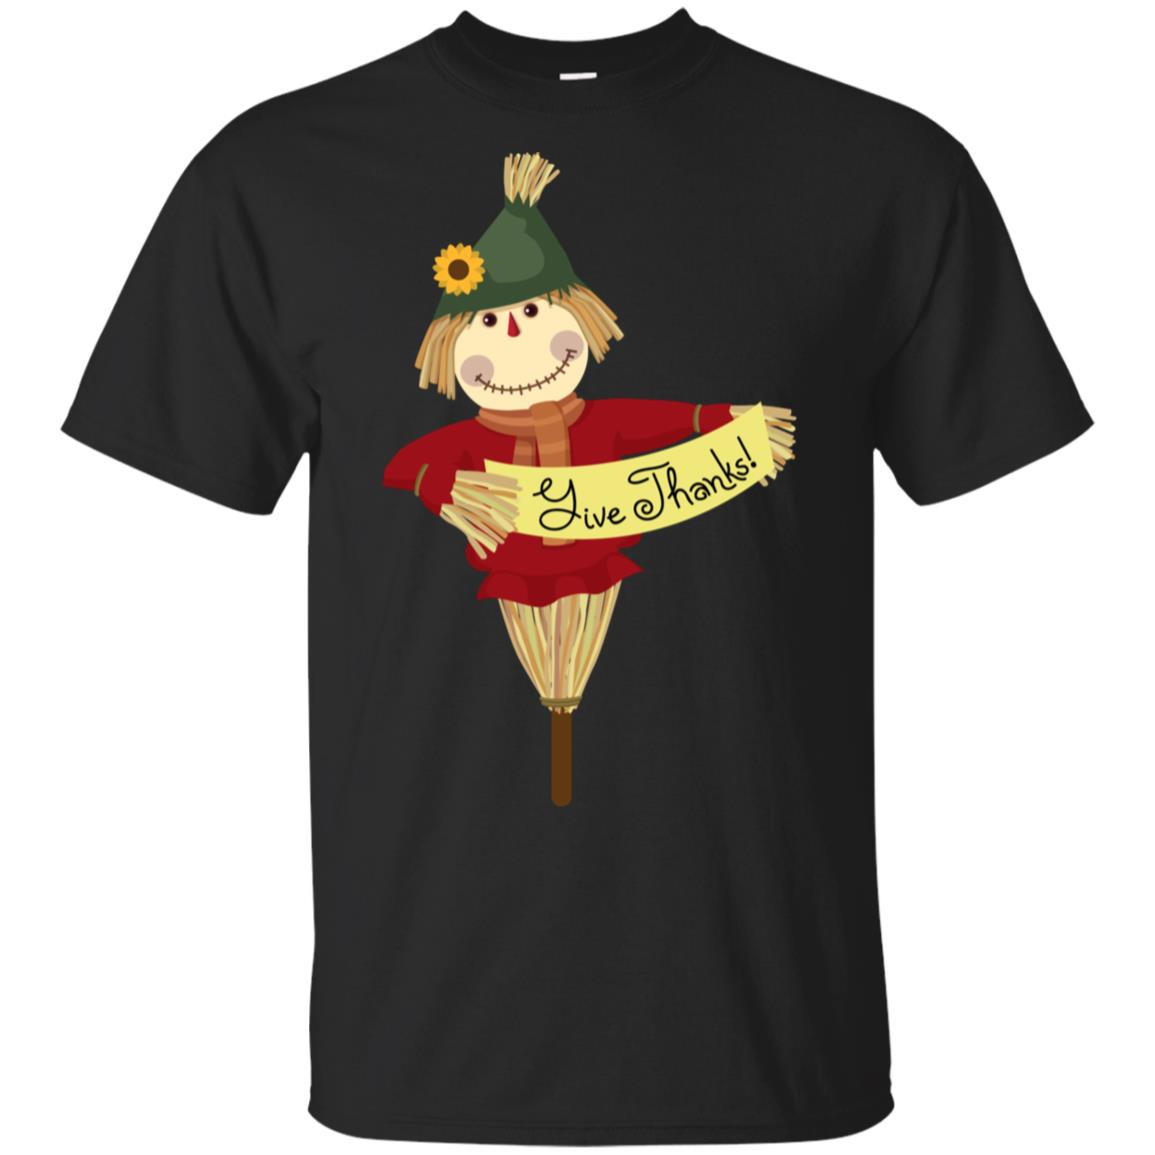 Give-Thanks Funny Thanksgiving Scarecrow Unisex Short Sleeve